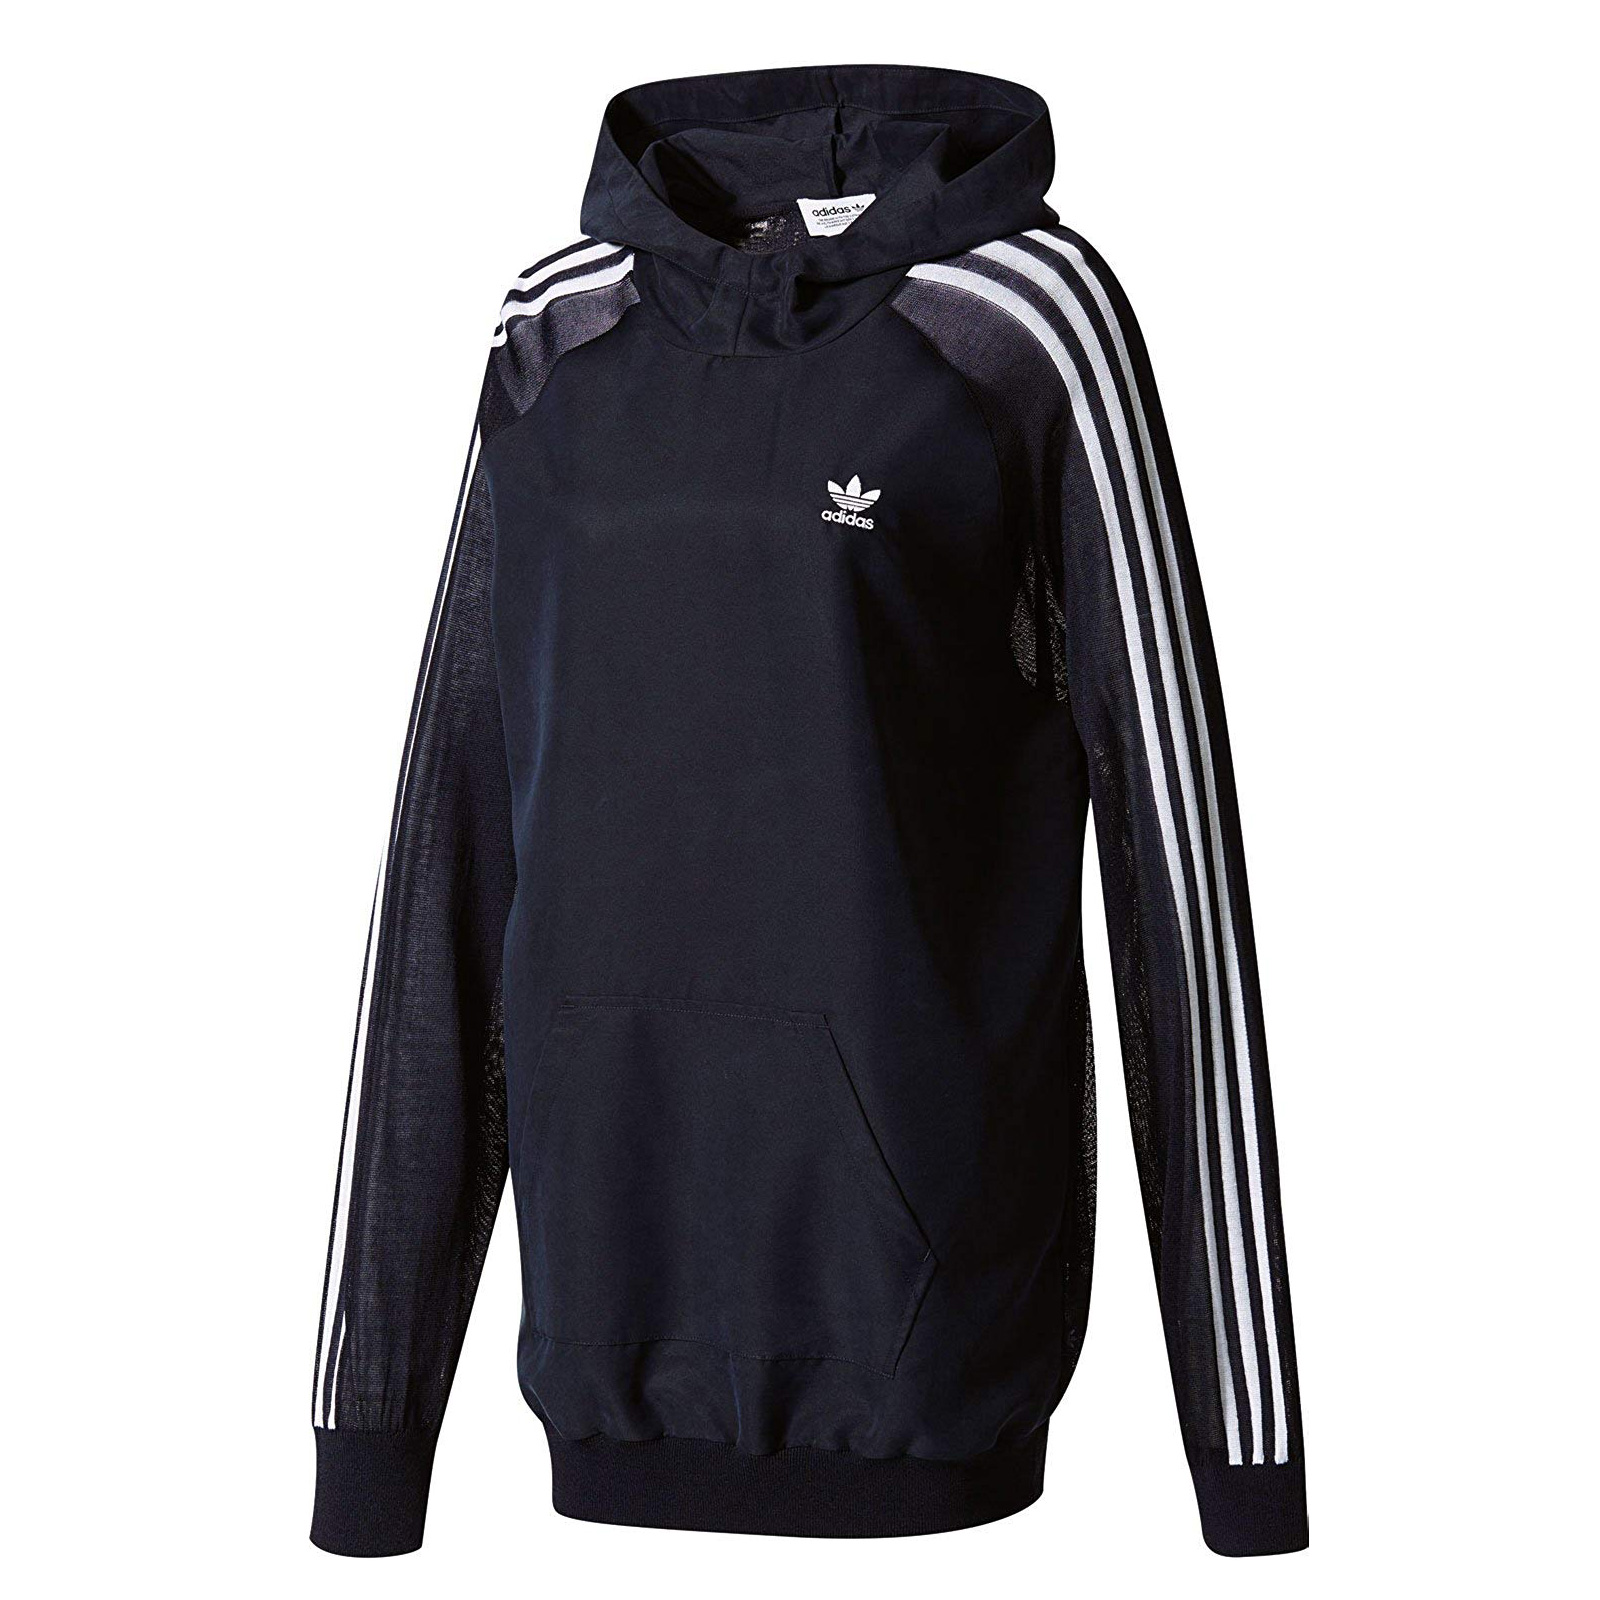 Details zu adidas Originals 3 Stripes Long Hoodie langes Sweatshirt Kapuzenpullover Blau